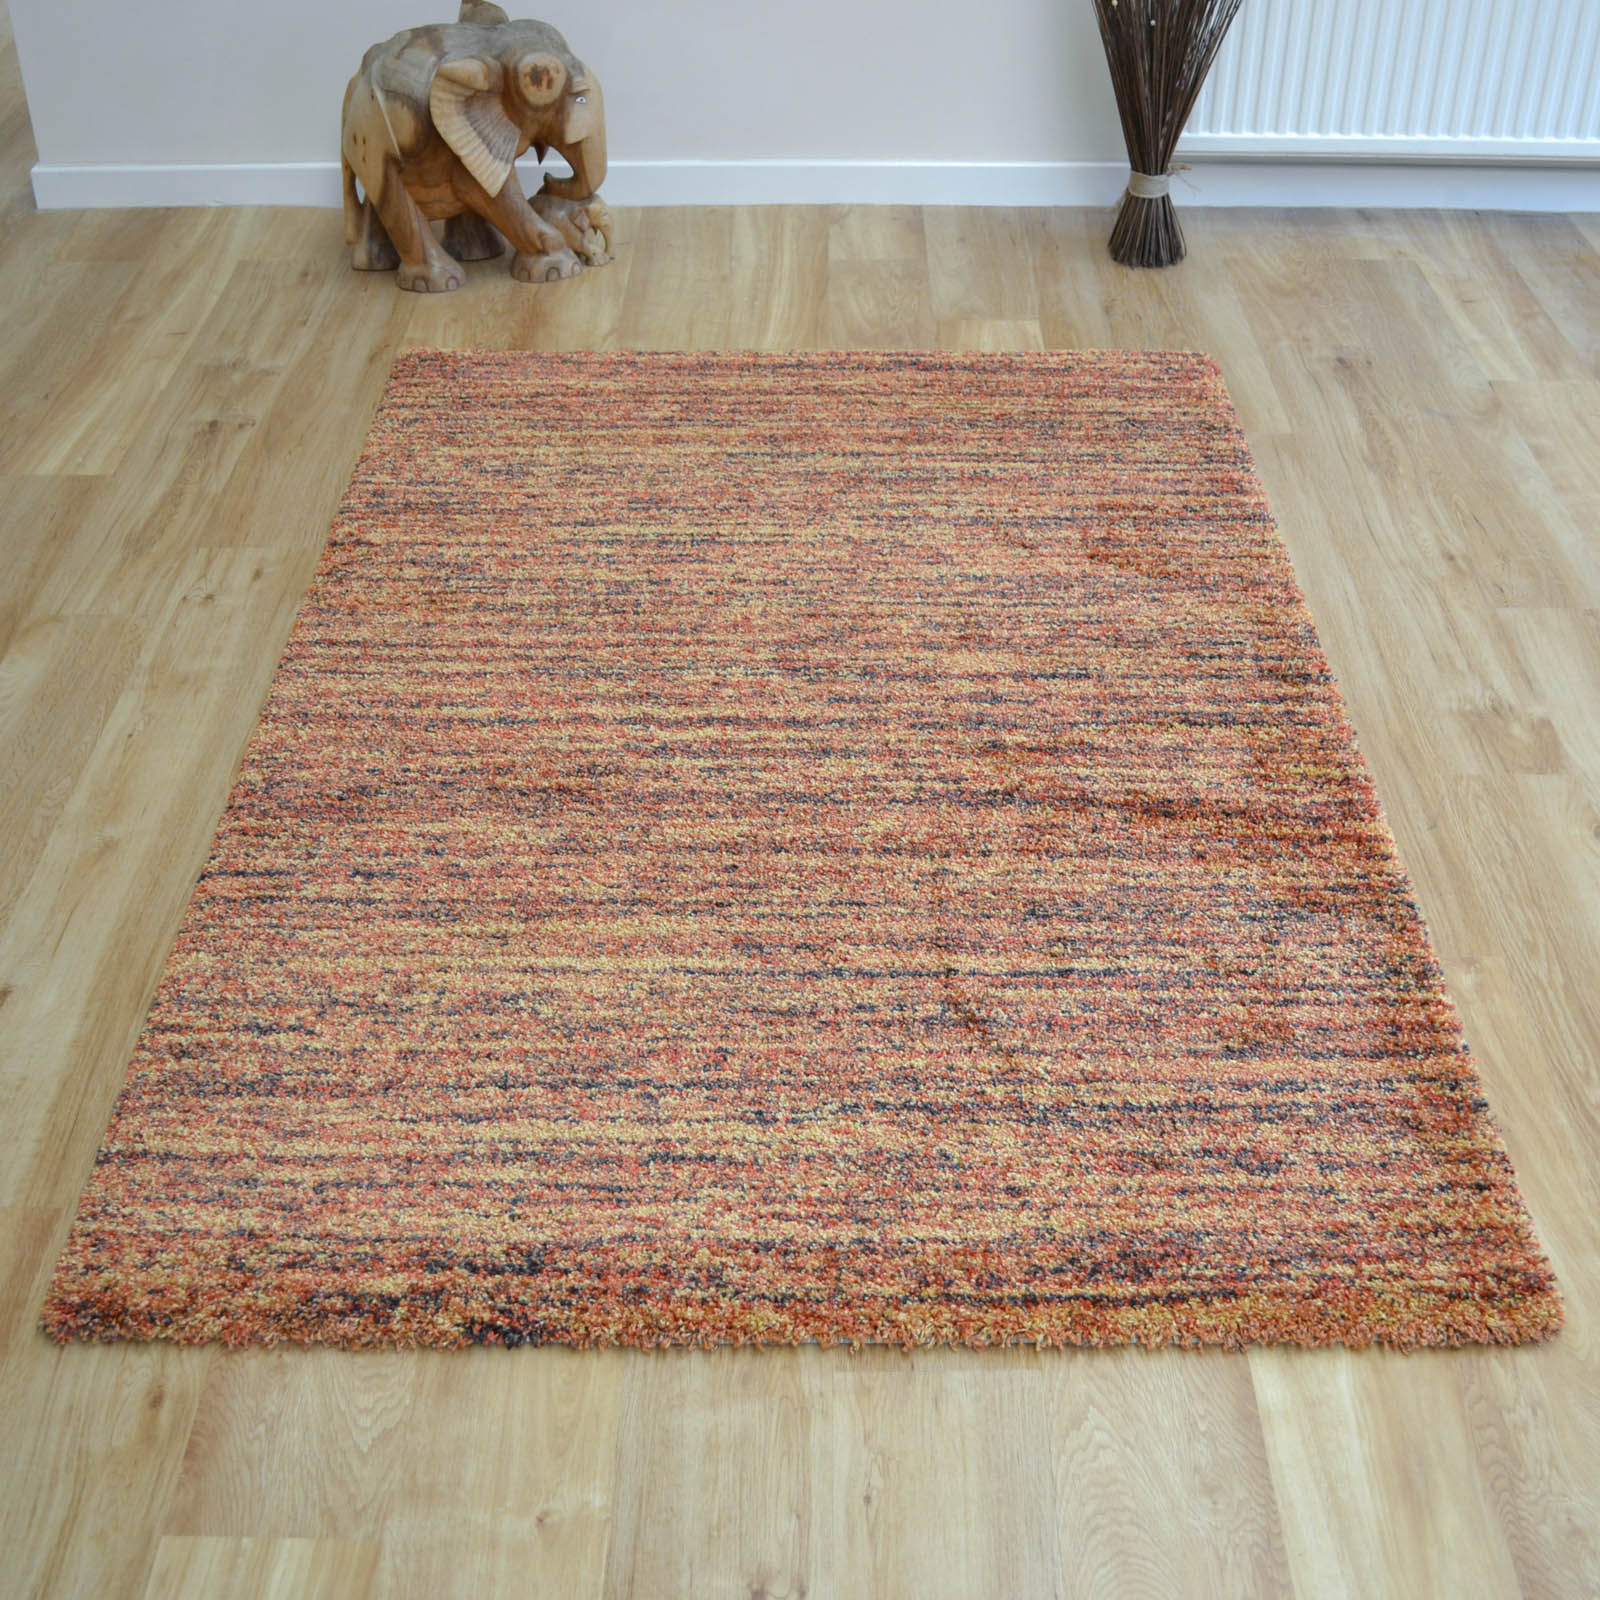 Mehari Rugs 23067 1595 in Burnt Orange